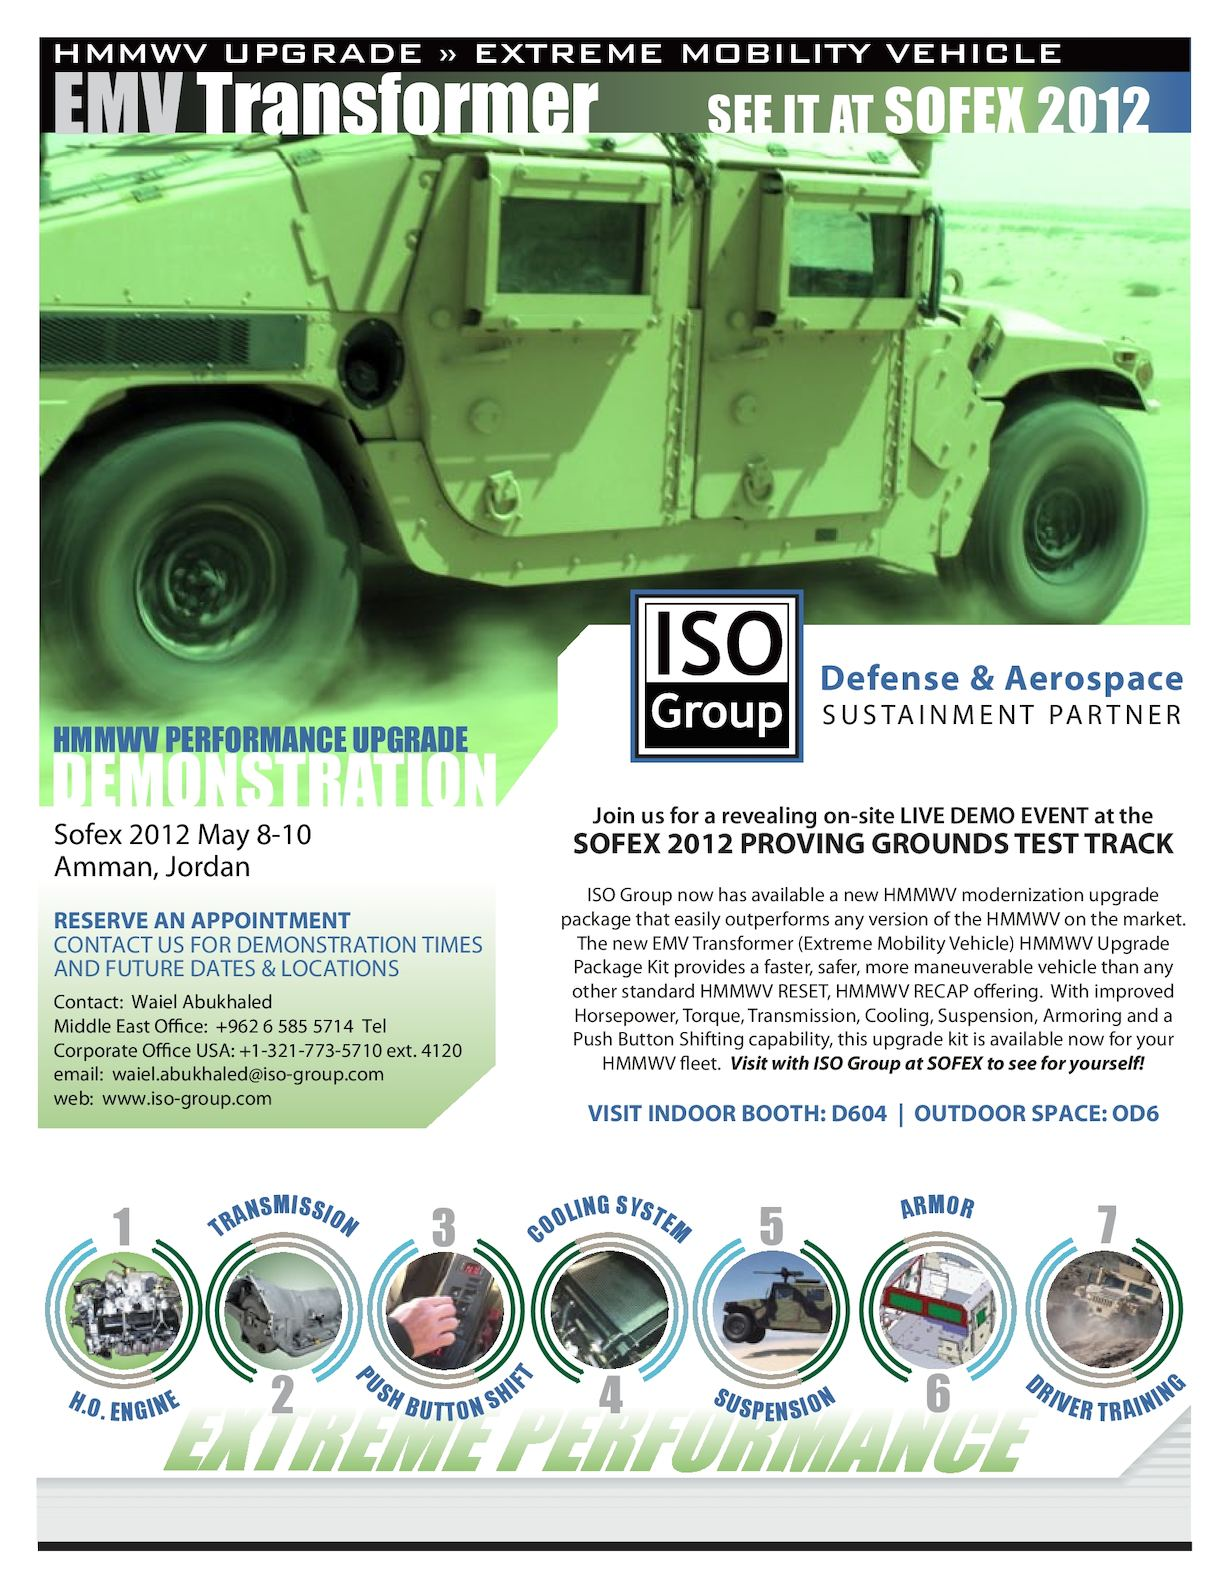 SOFEX HMMWV Upgrade DEMO